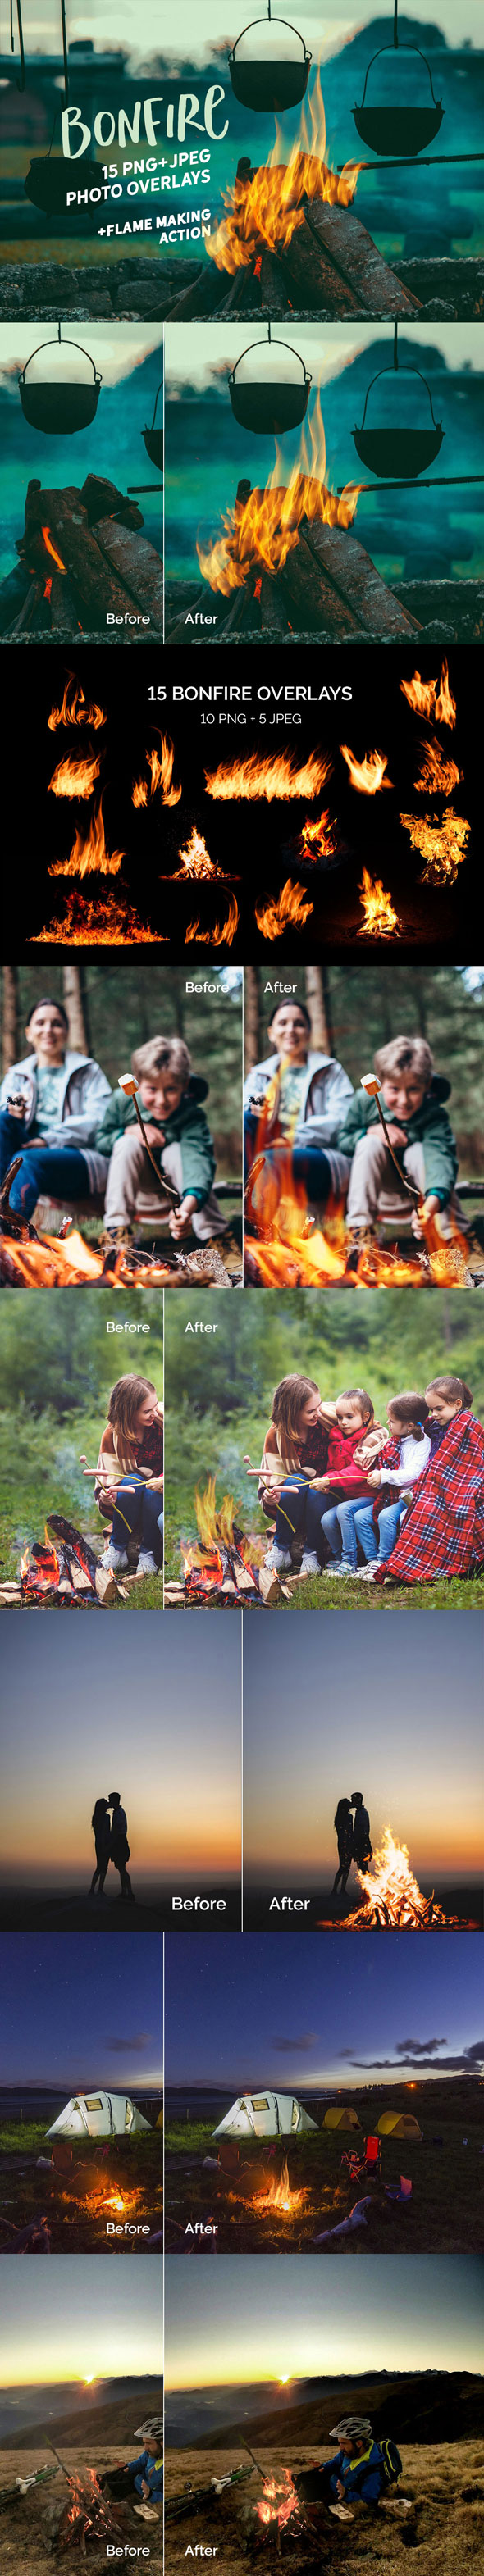 15 Bonfire Photo Overlays - Photo Effects Actions